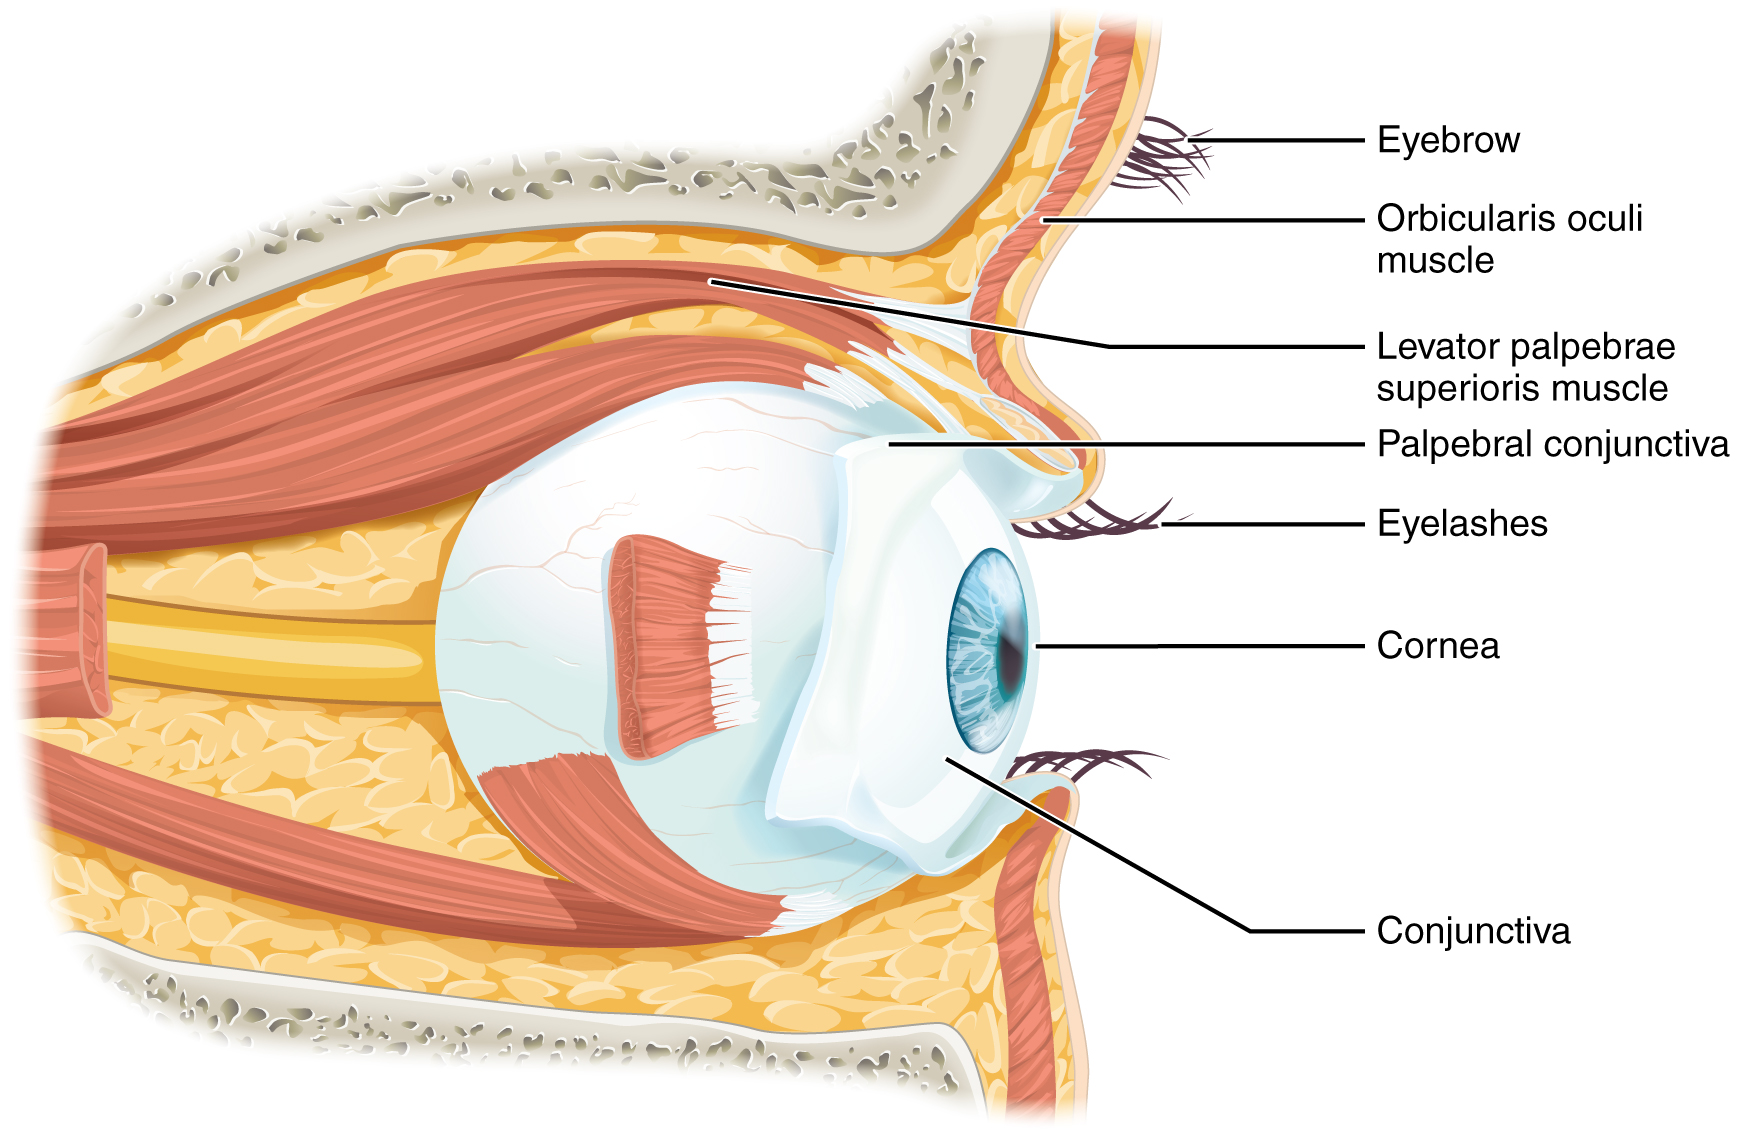 Special Senses Anatomy Of The Eye Oer Commons